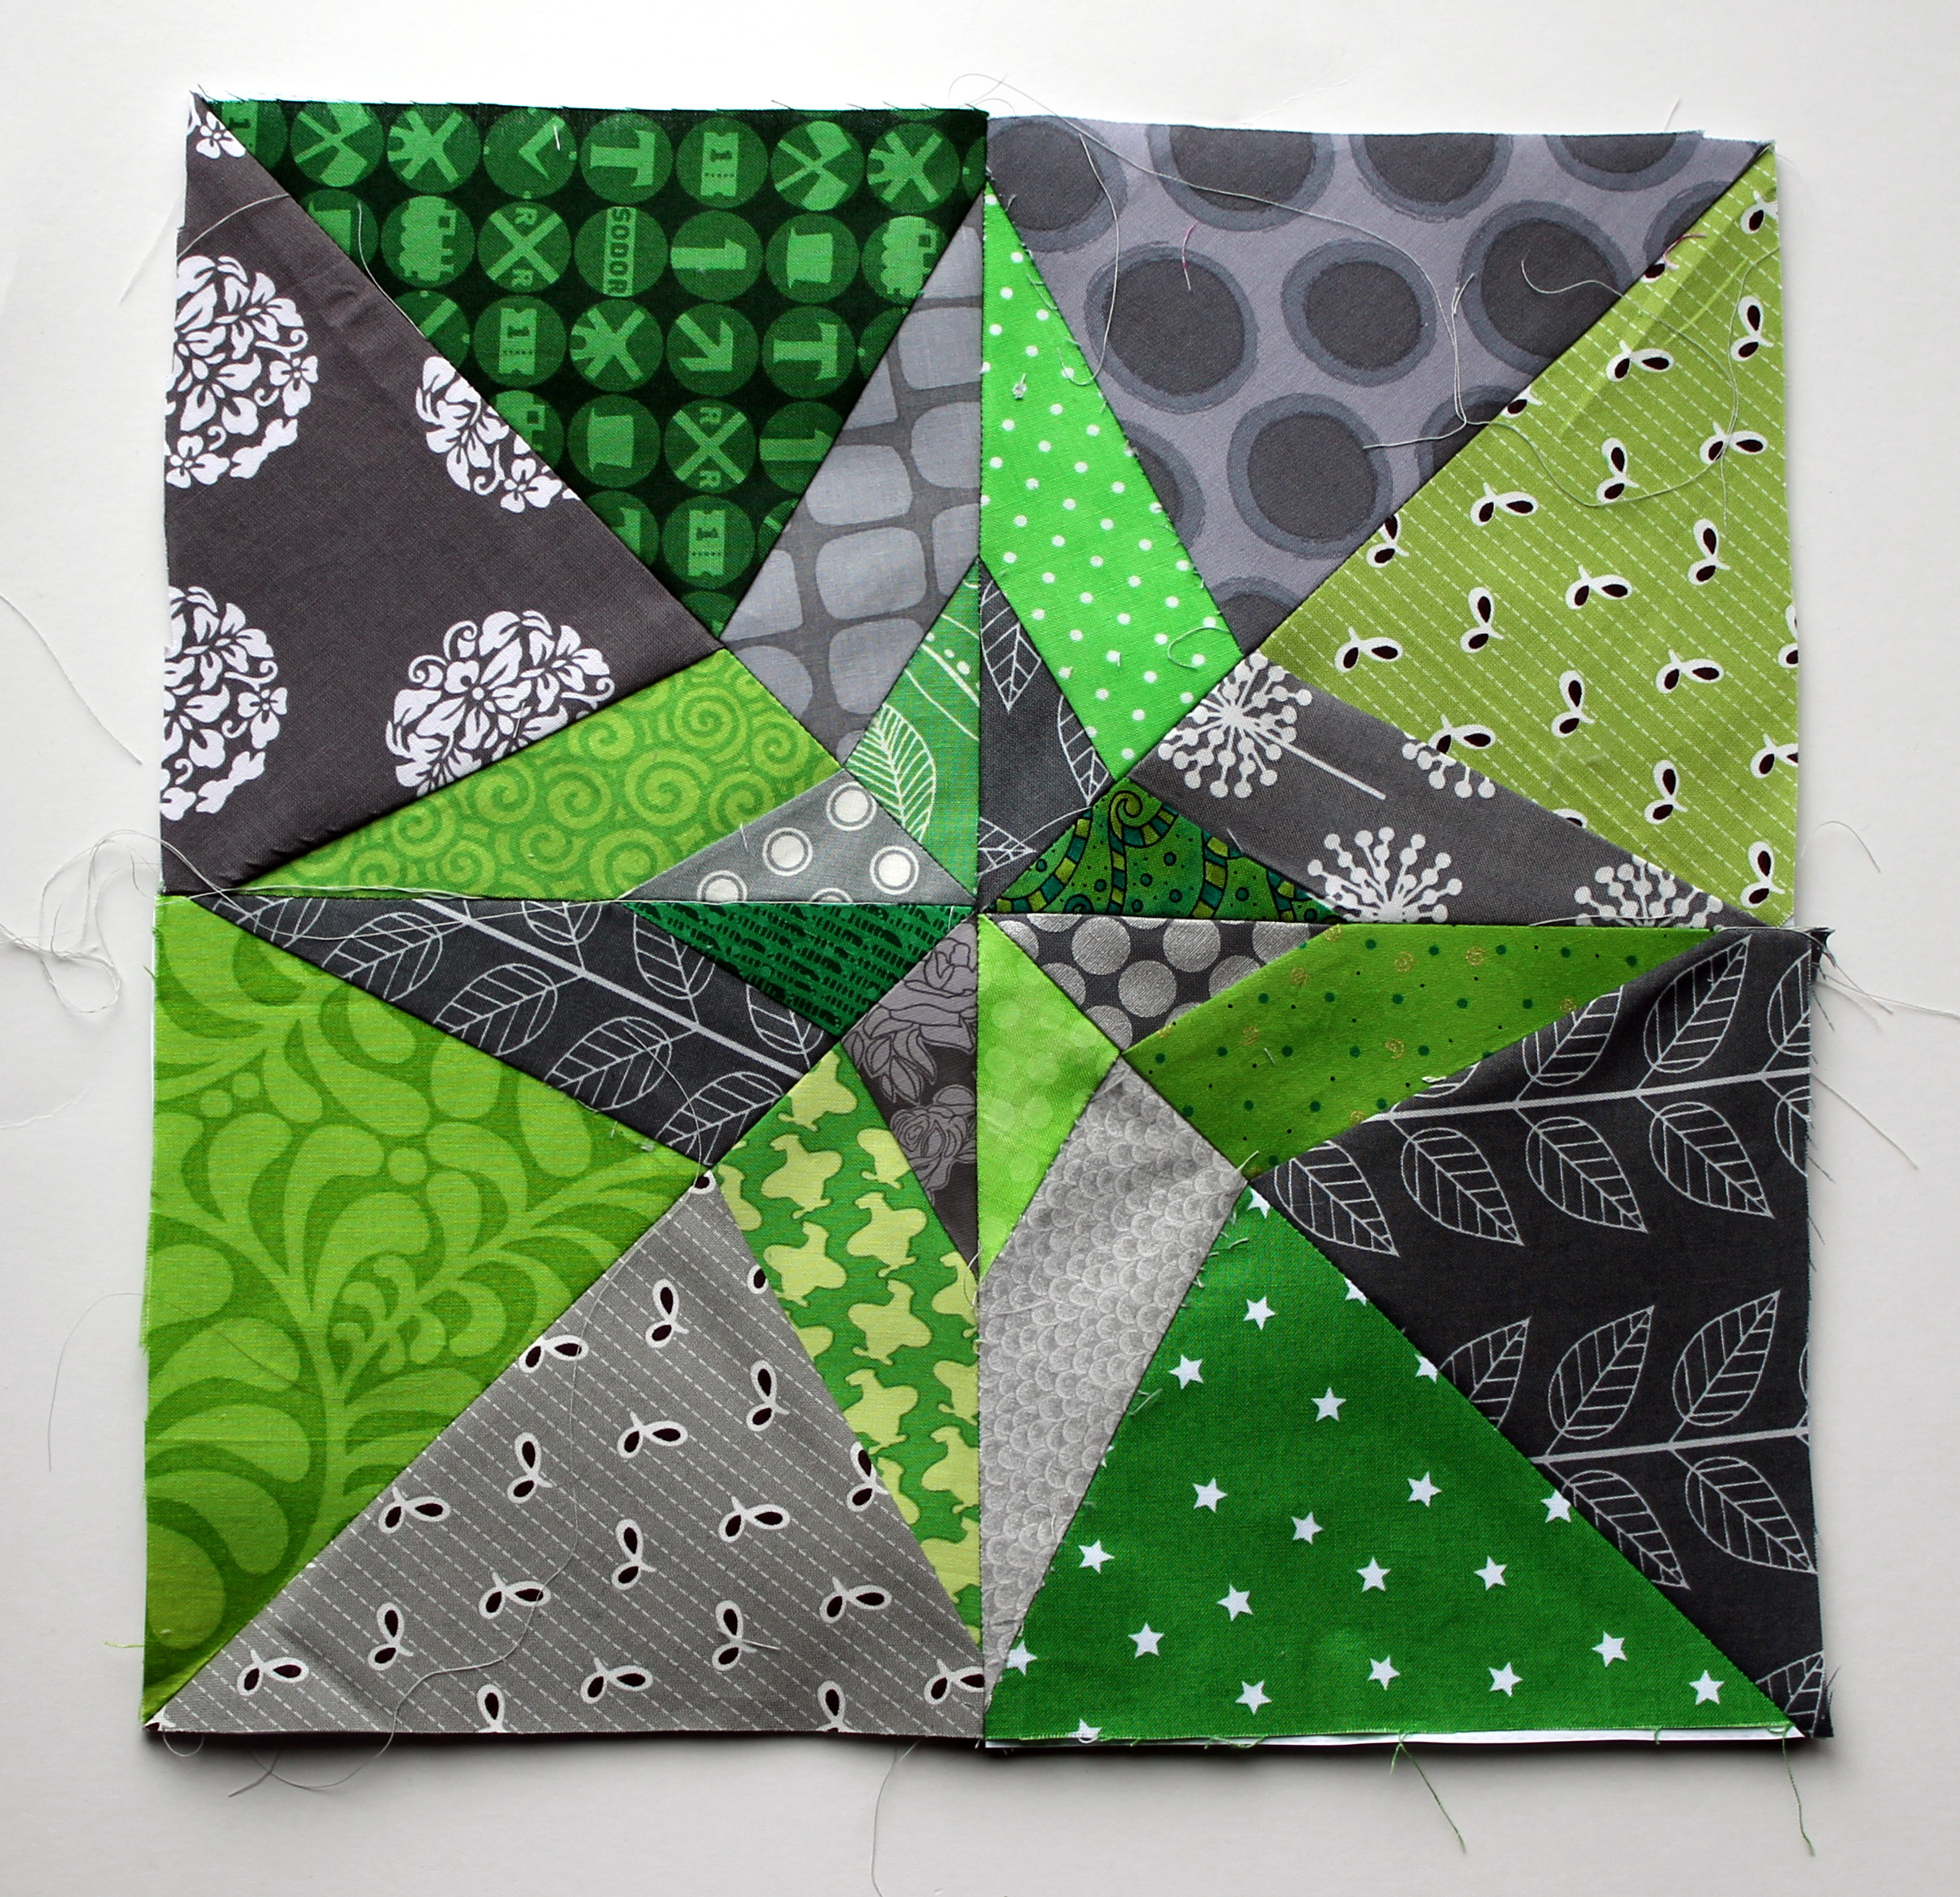 paper piecing night & day quilt block in modern grey & green